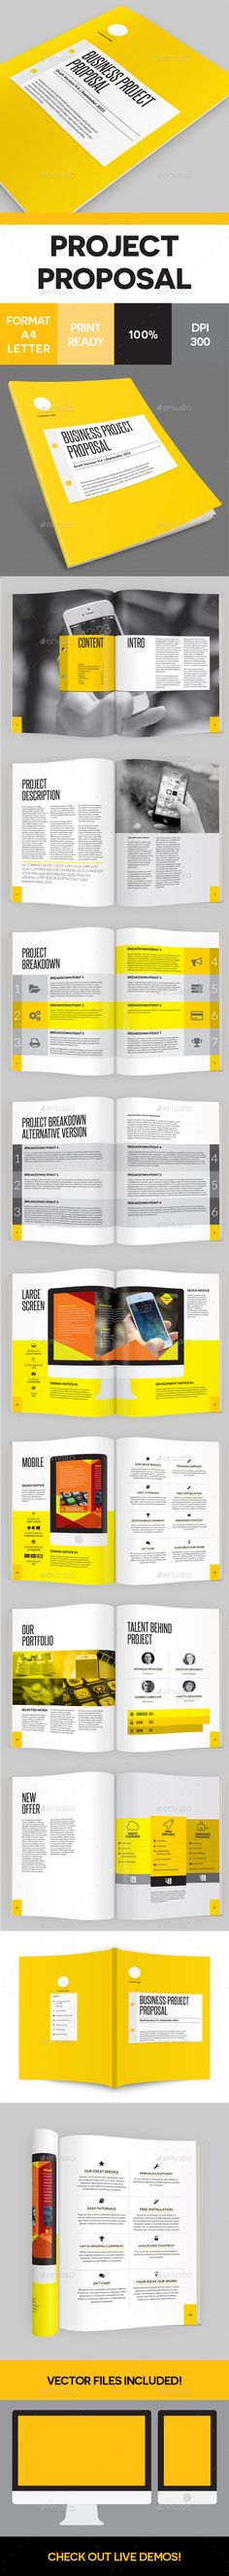 Identity Proposal Template Proposal templates, Font logo and Fonts - advertising proposal template